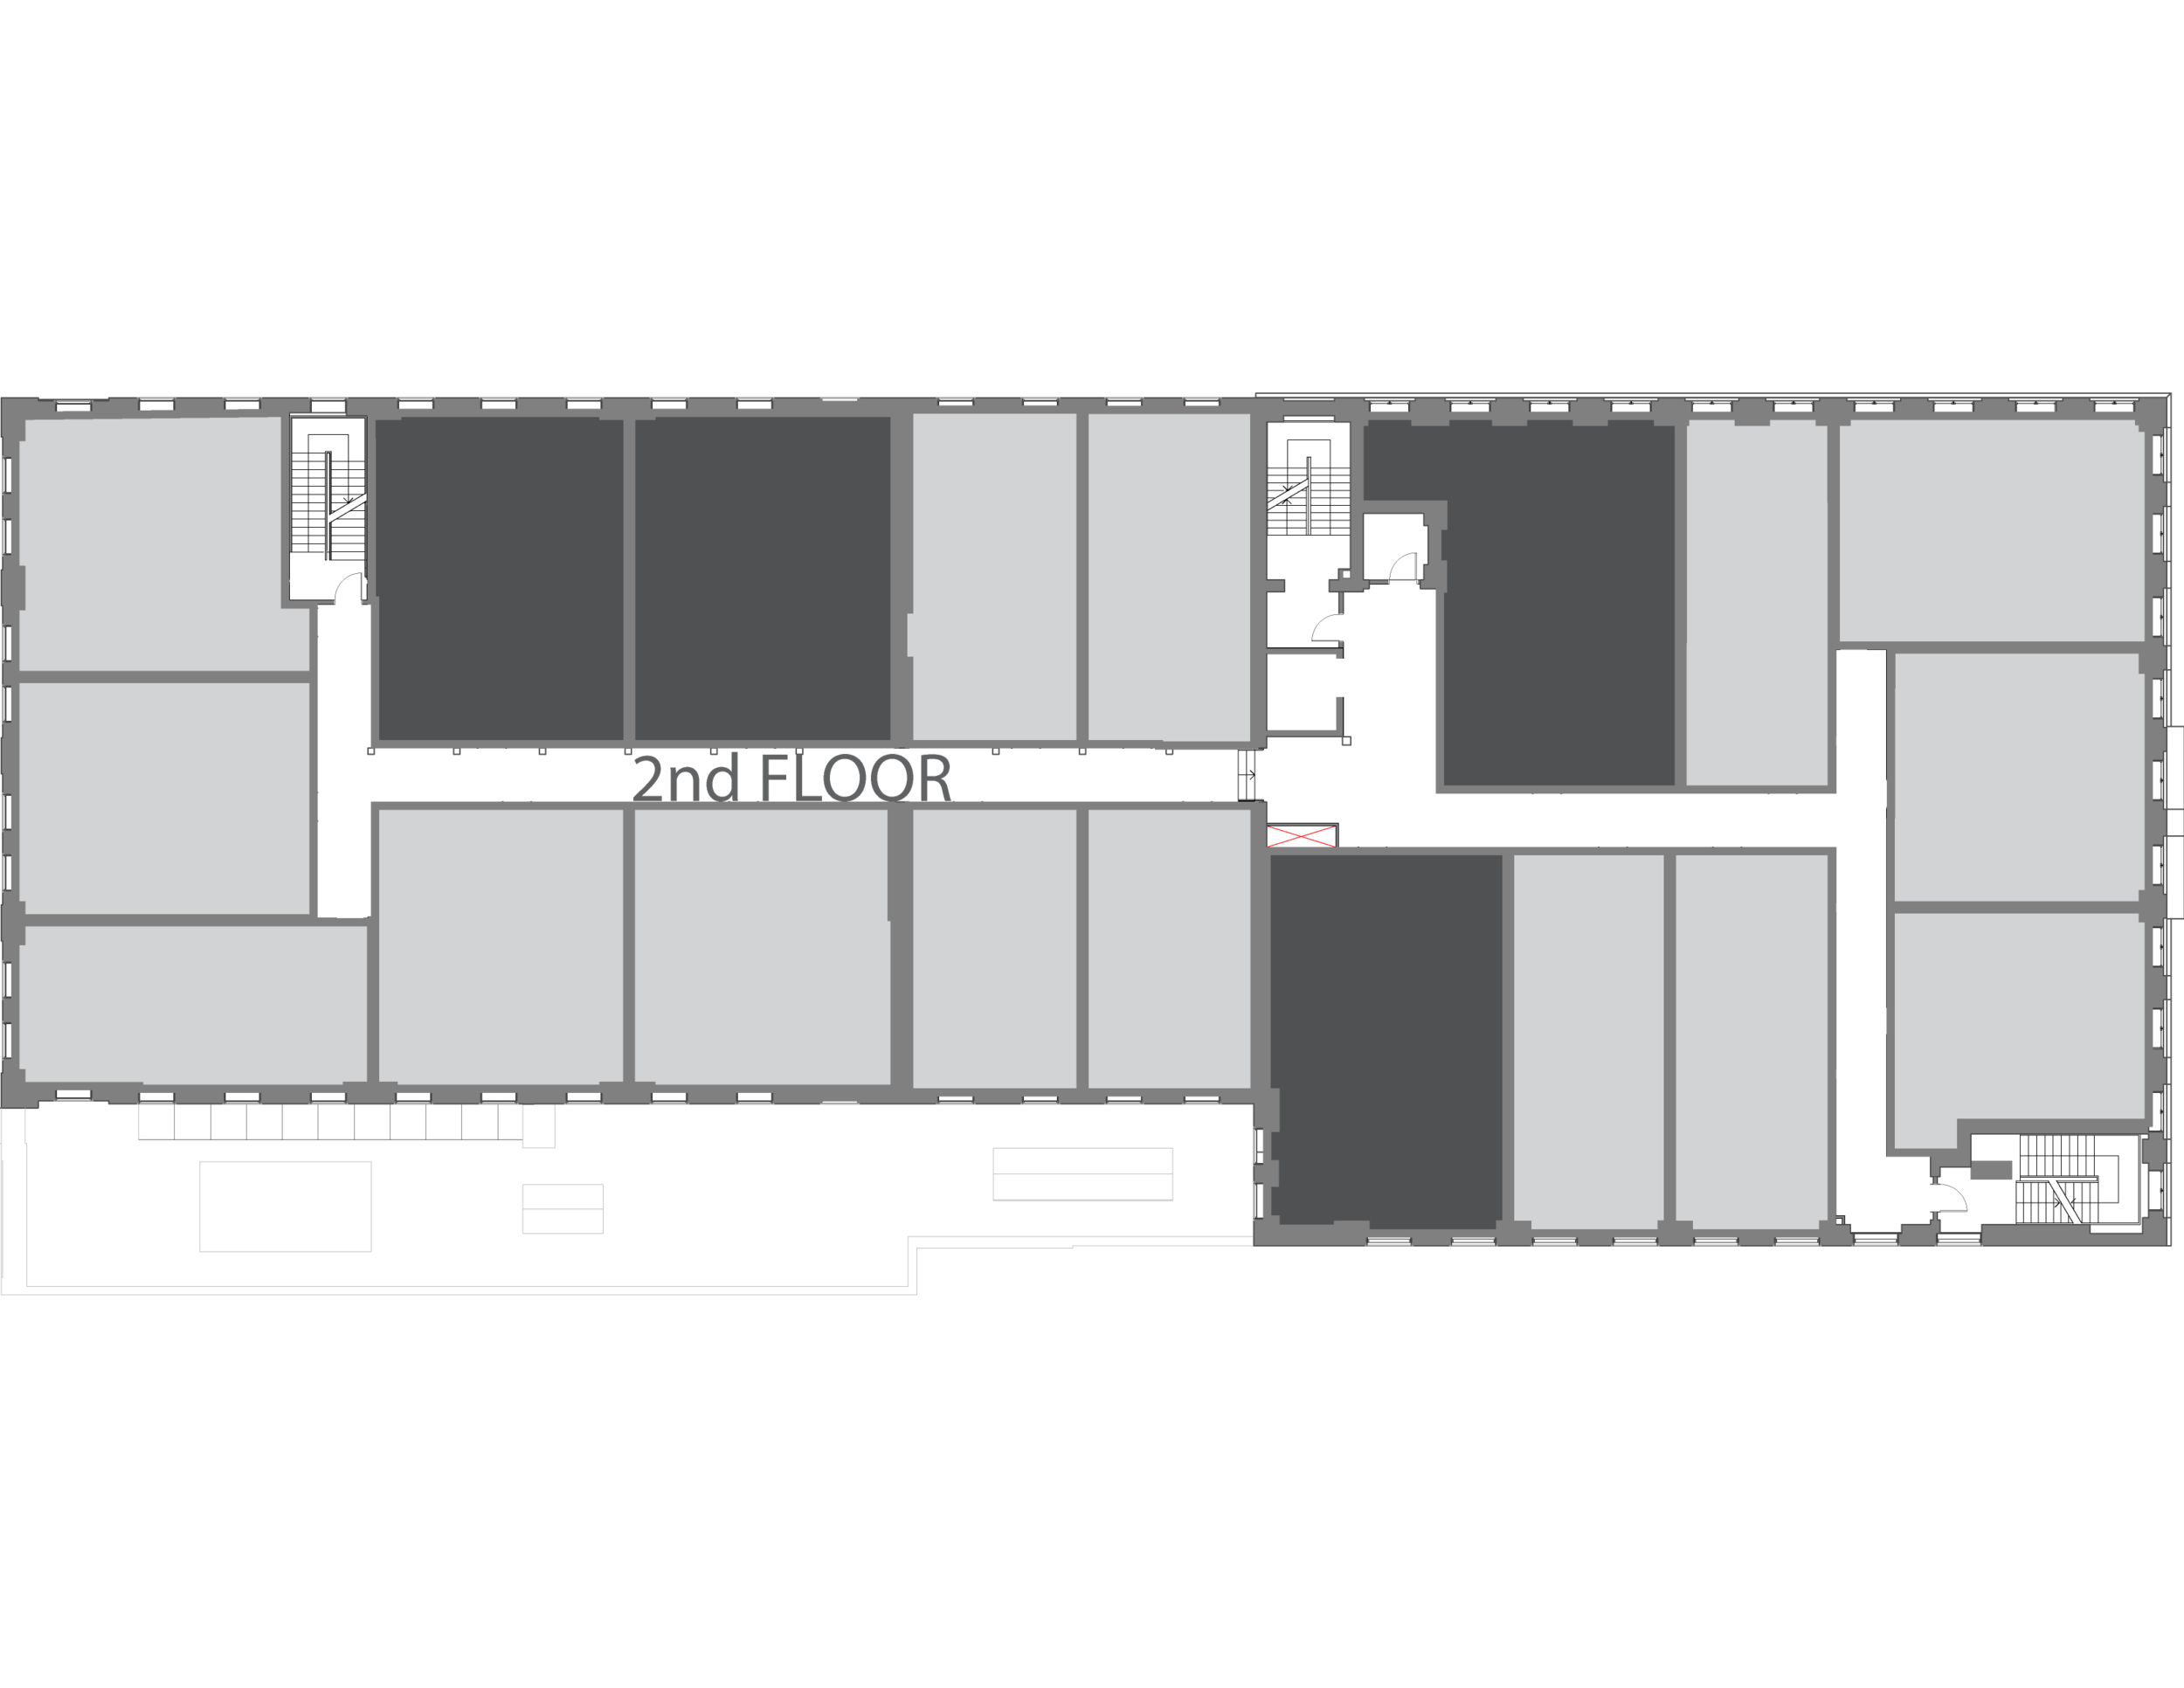 Doyle_plan  NUTS&BOLTS_2ND FLOOR.png